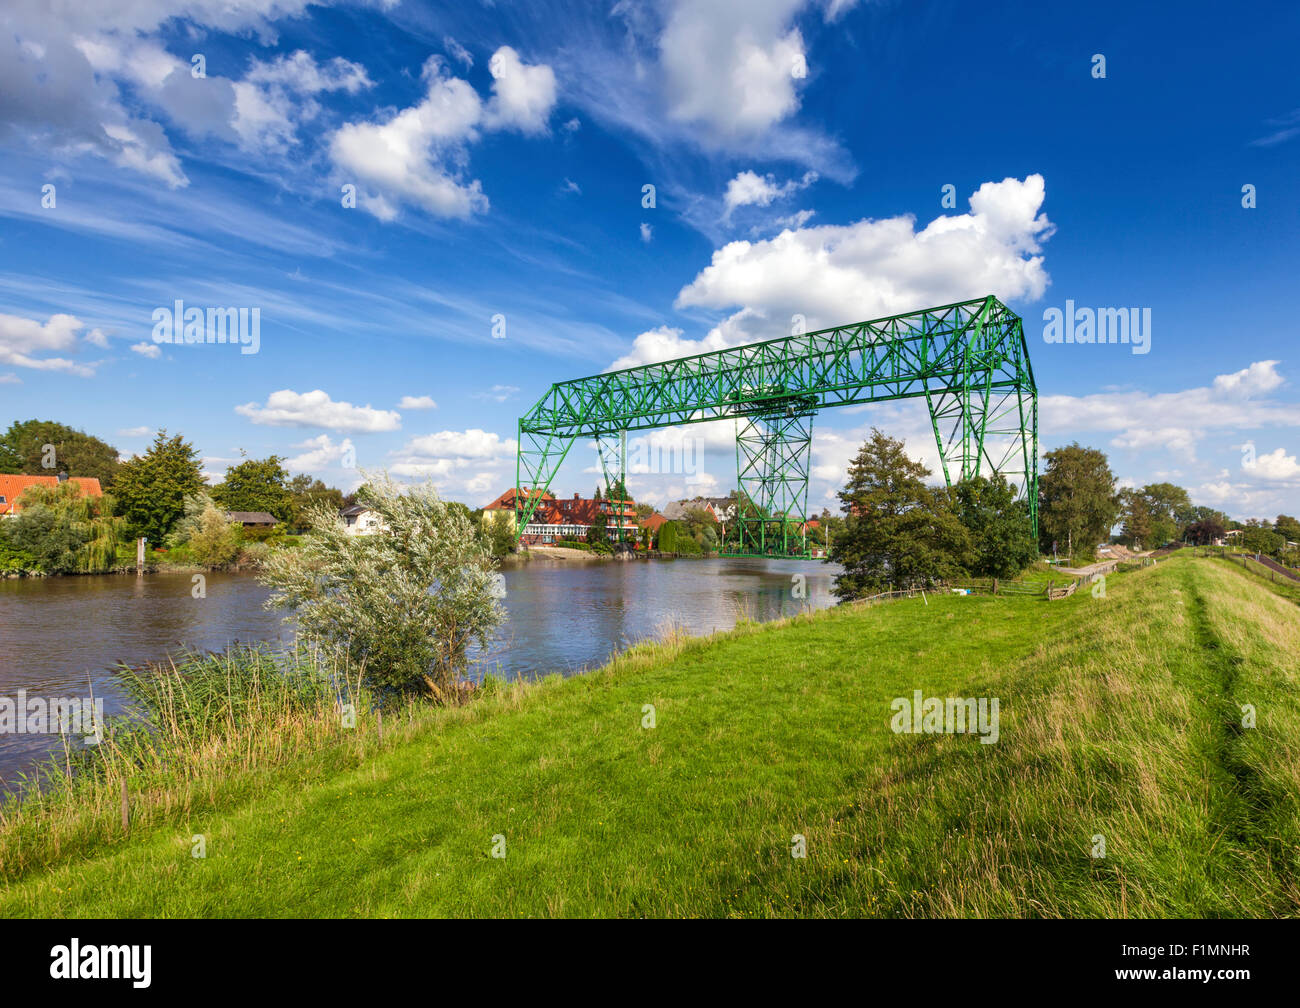 Historic transporter bridge across the Oste river and Osten village, wide angle view - Stock Image